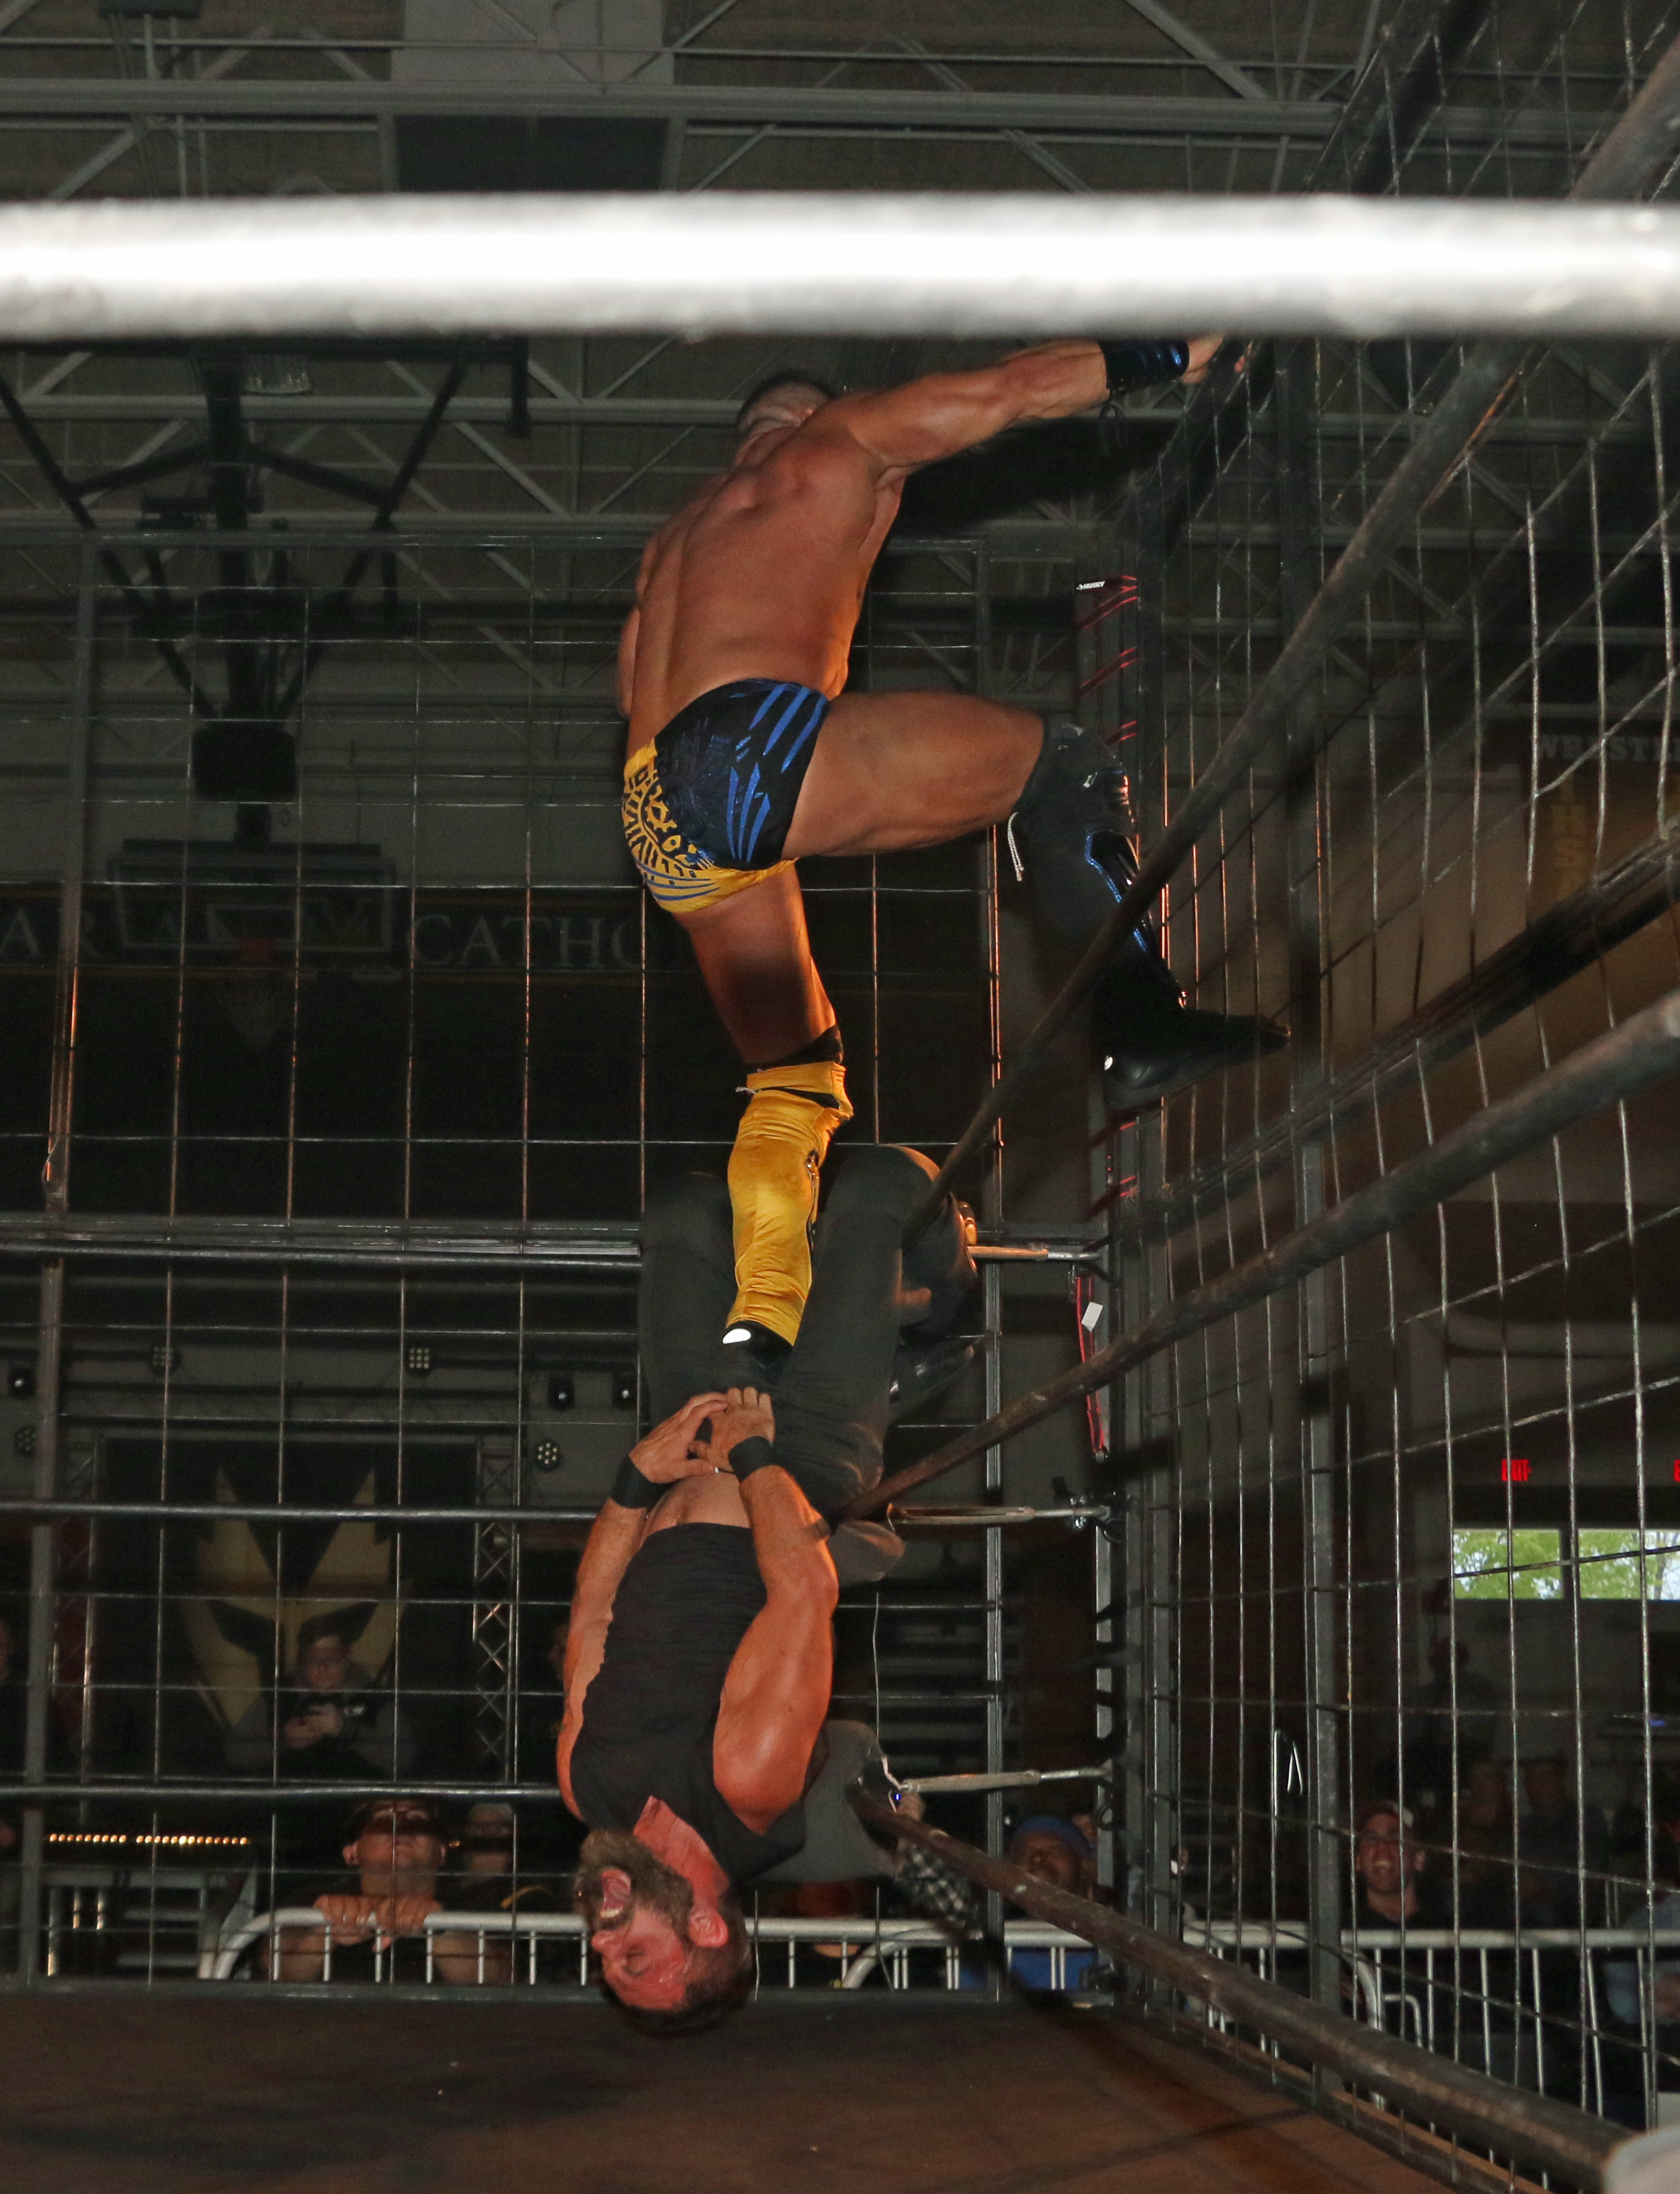 Brian Cage stomps on Austin Aries' crotch as he climbs the side of the cage.